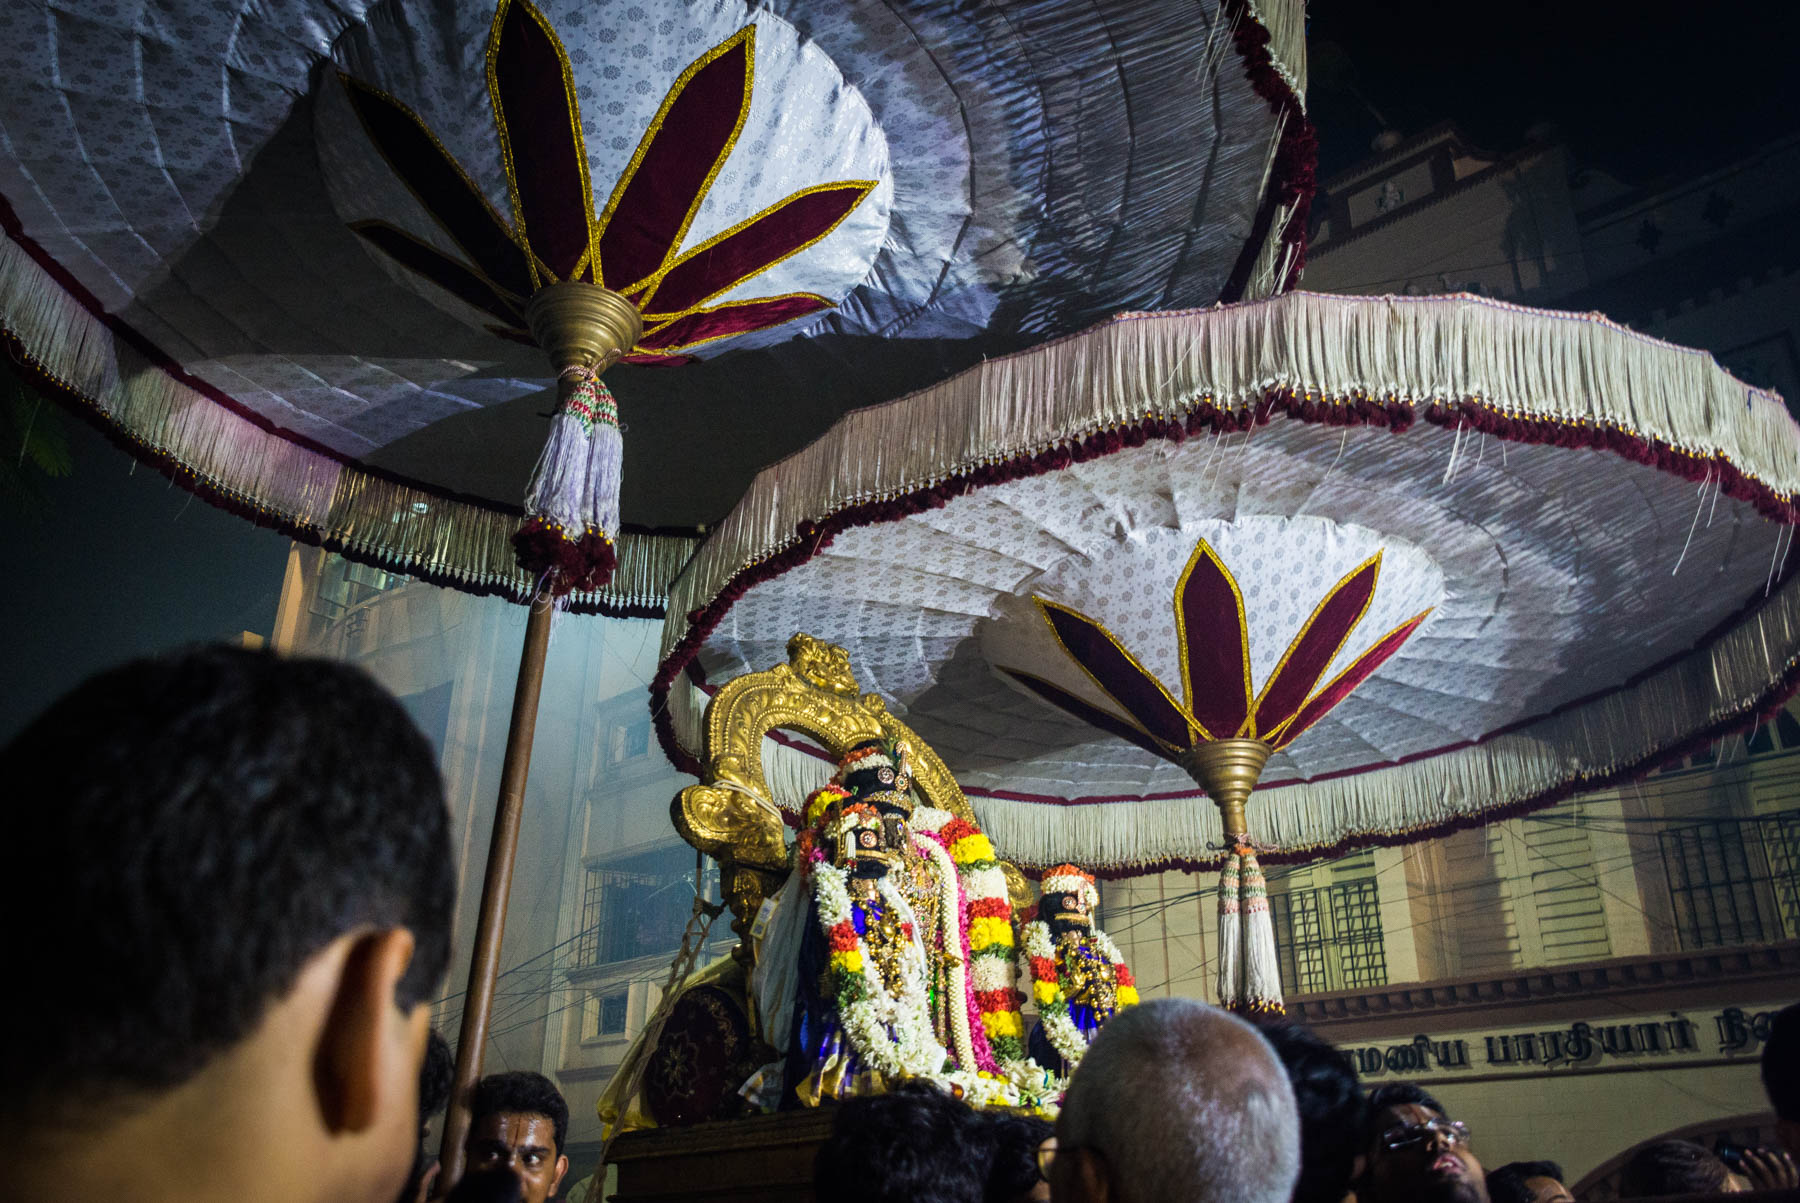 Why we fell in love with India - Parthasarathy procession during Diwali in Chennai, Tamil Nadu state, India - Lost With Purpose travel blog